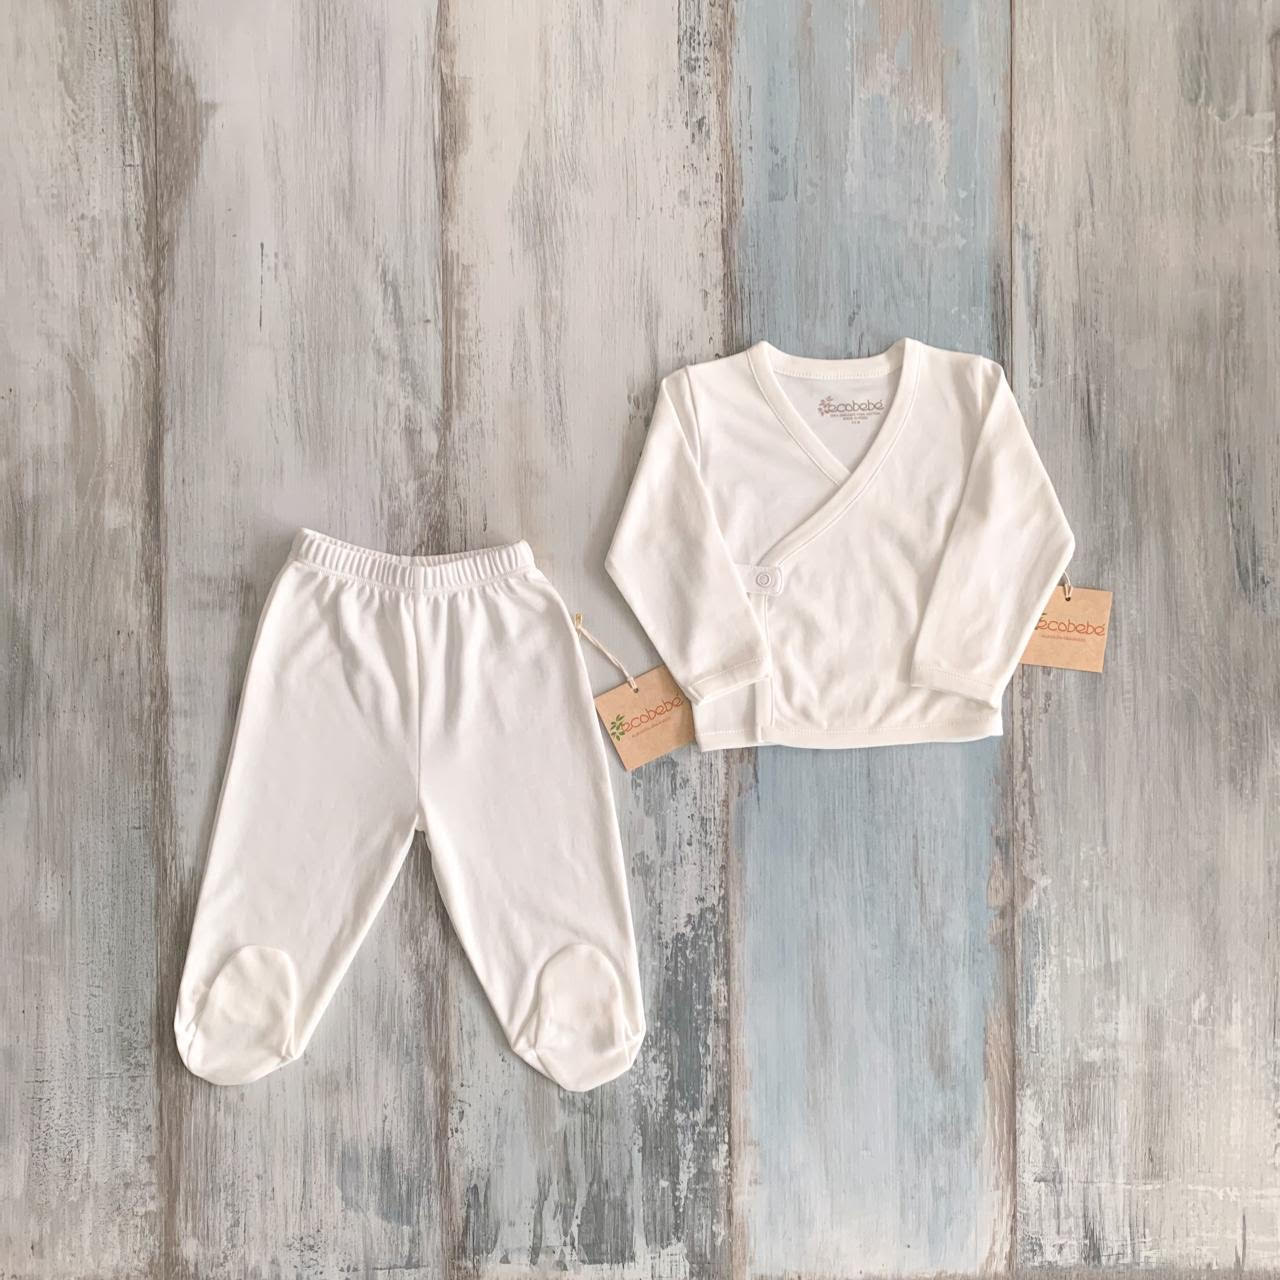 Why You Should Buy Sustainable Products for Your Baby from Pan American Apparel